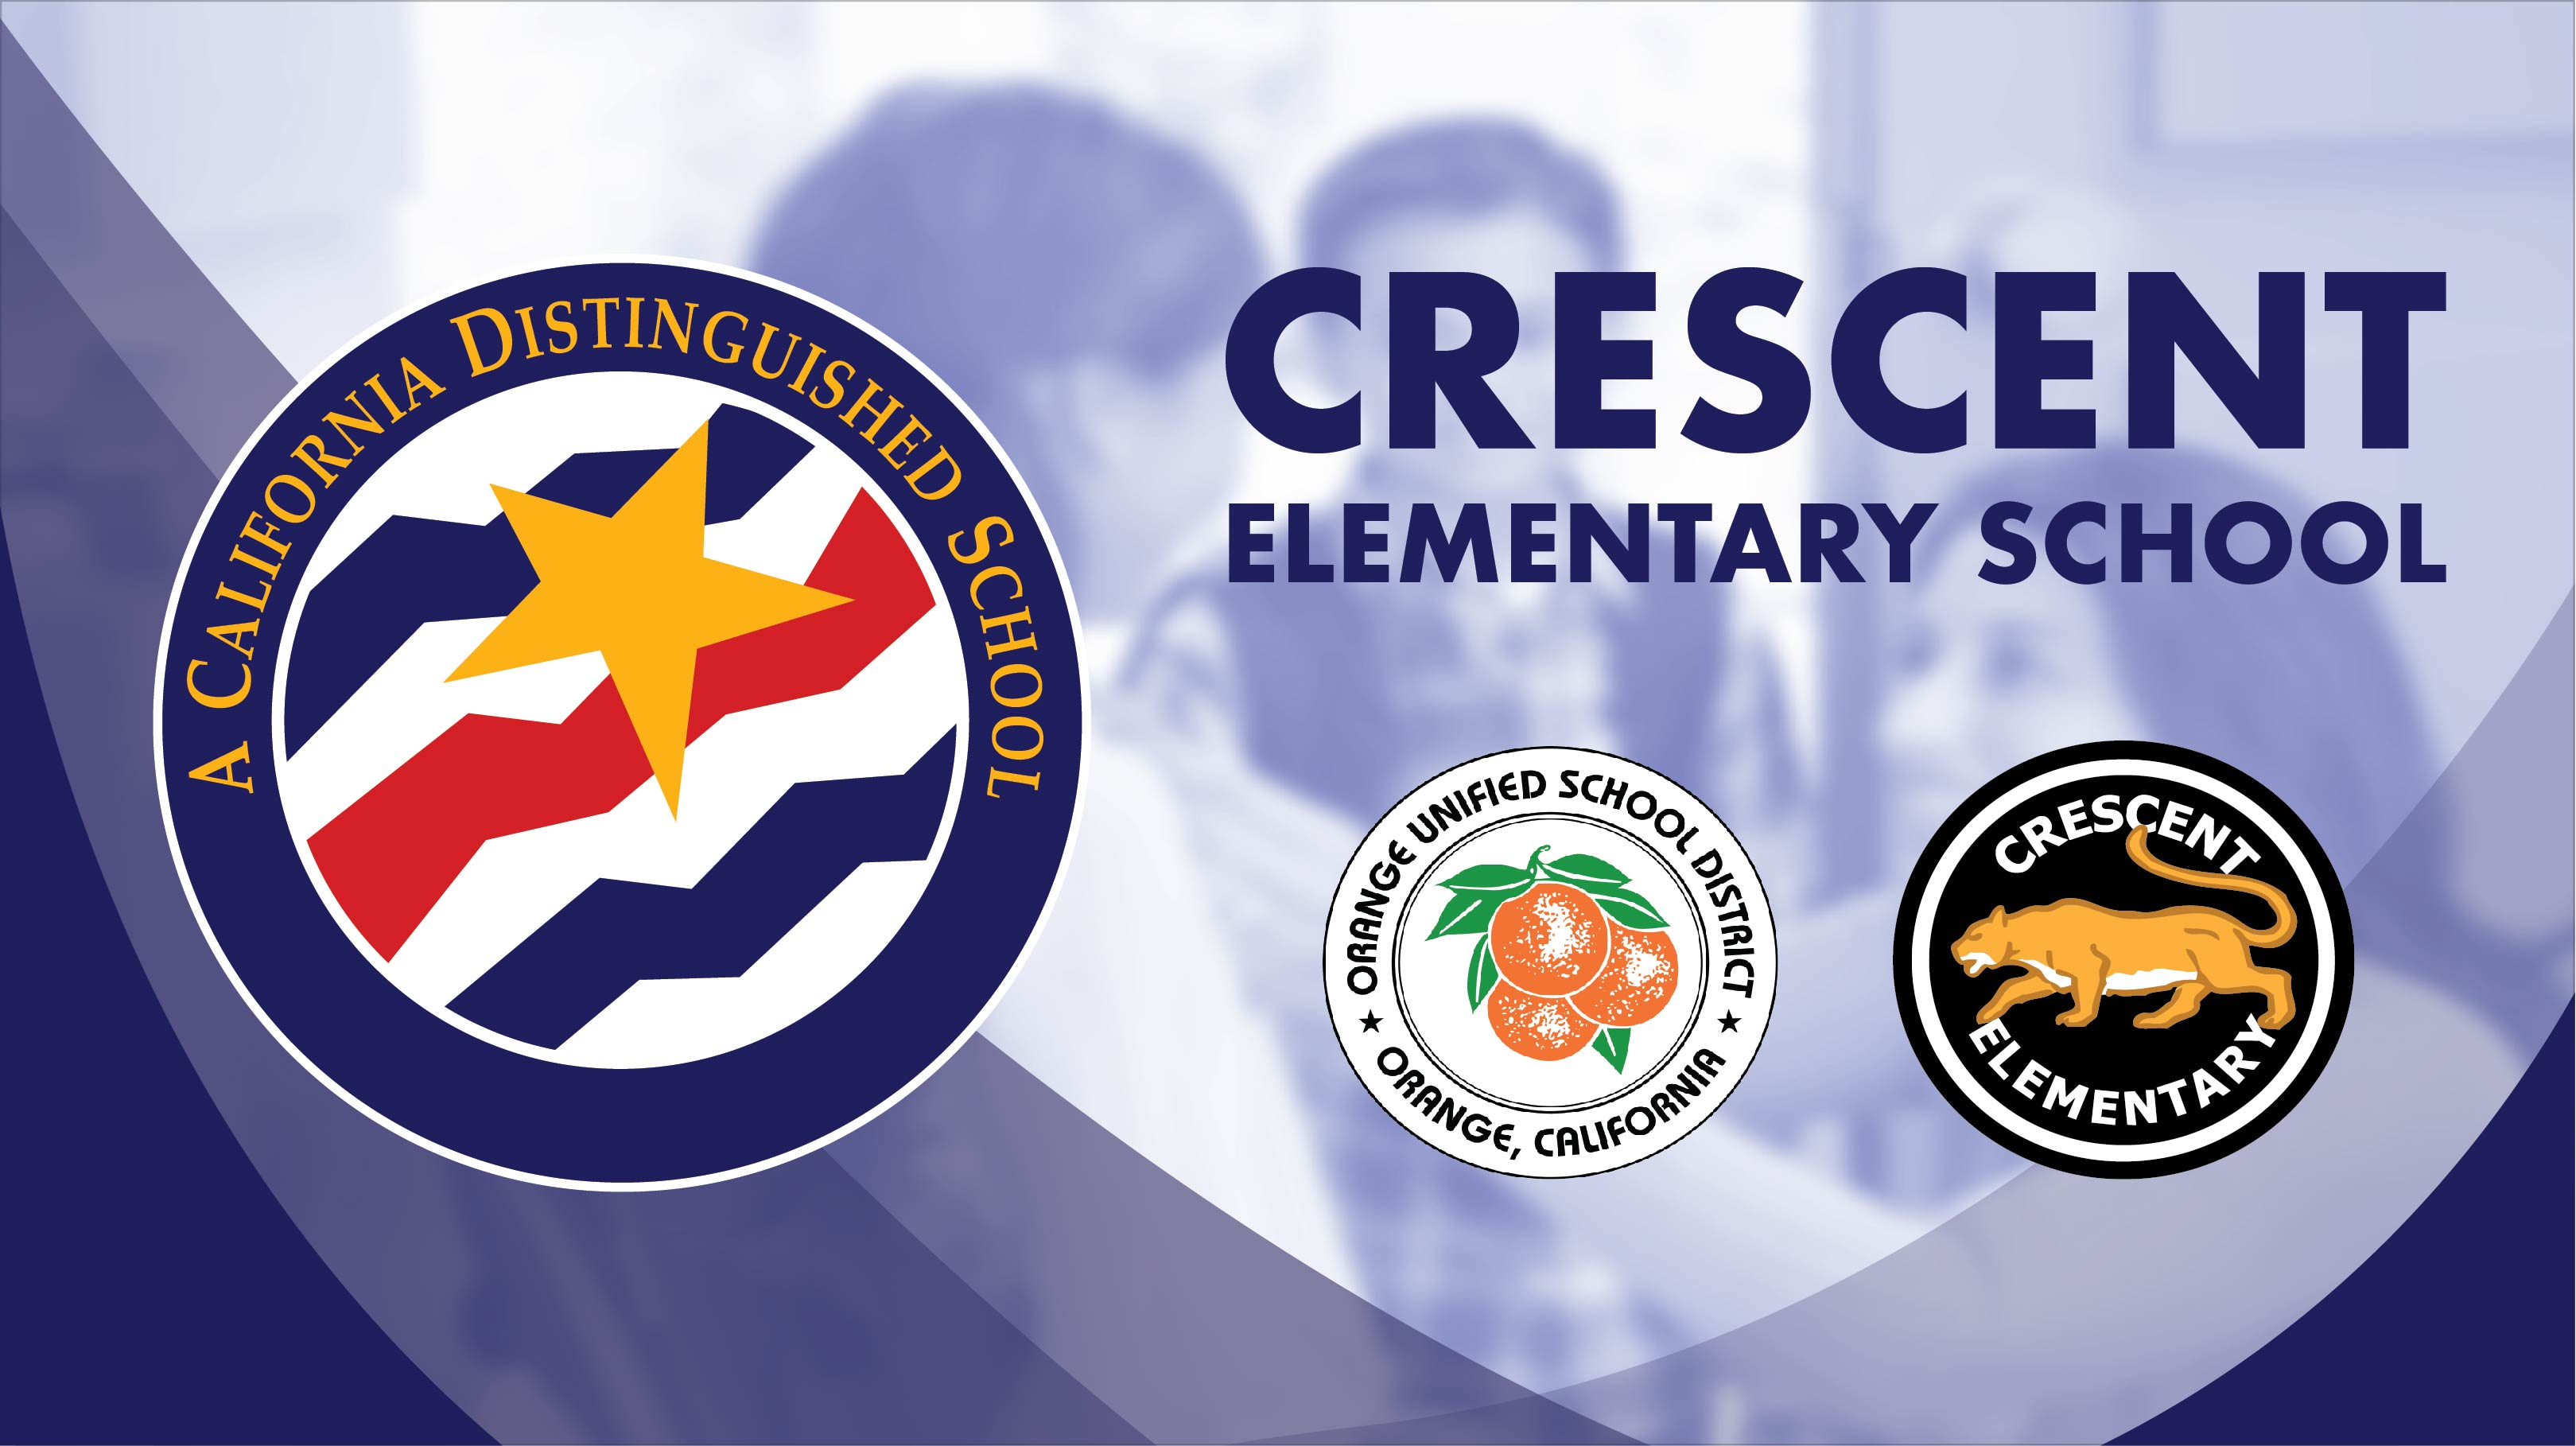 Congratulations to Crescent Elementary School on being recognized as a California Distinguished School!